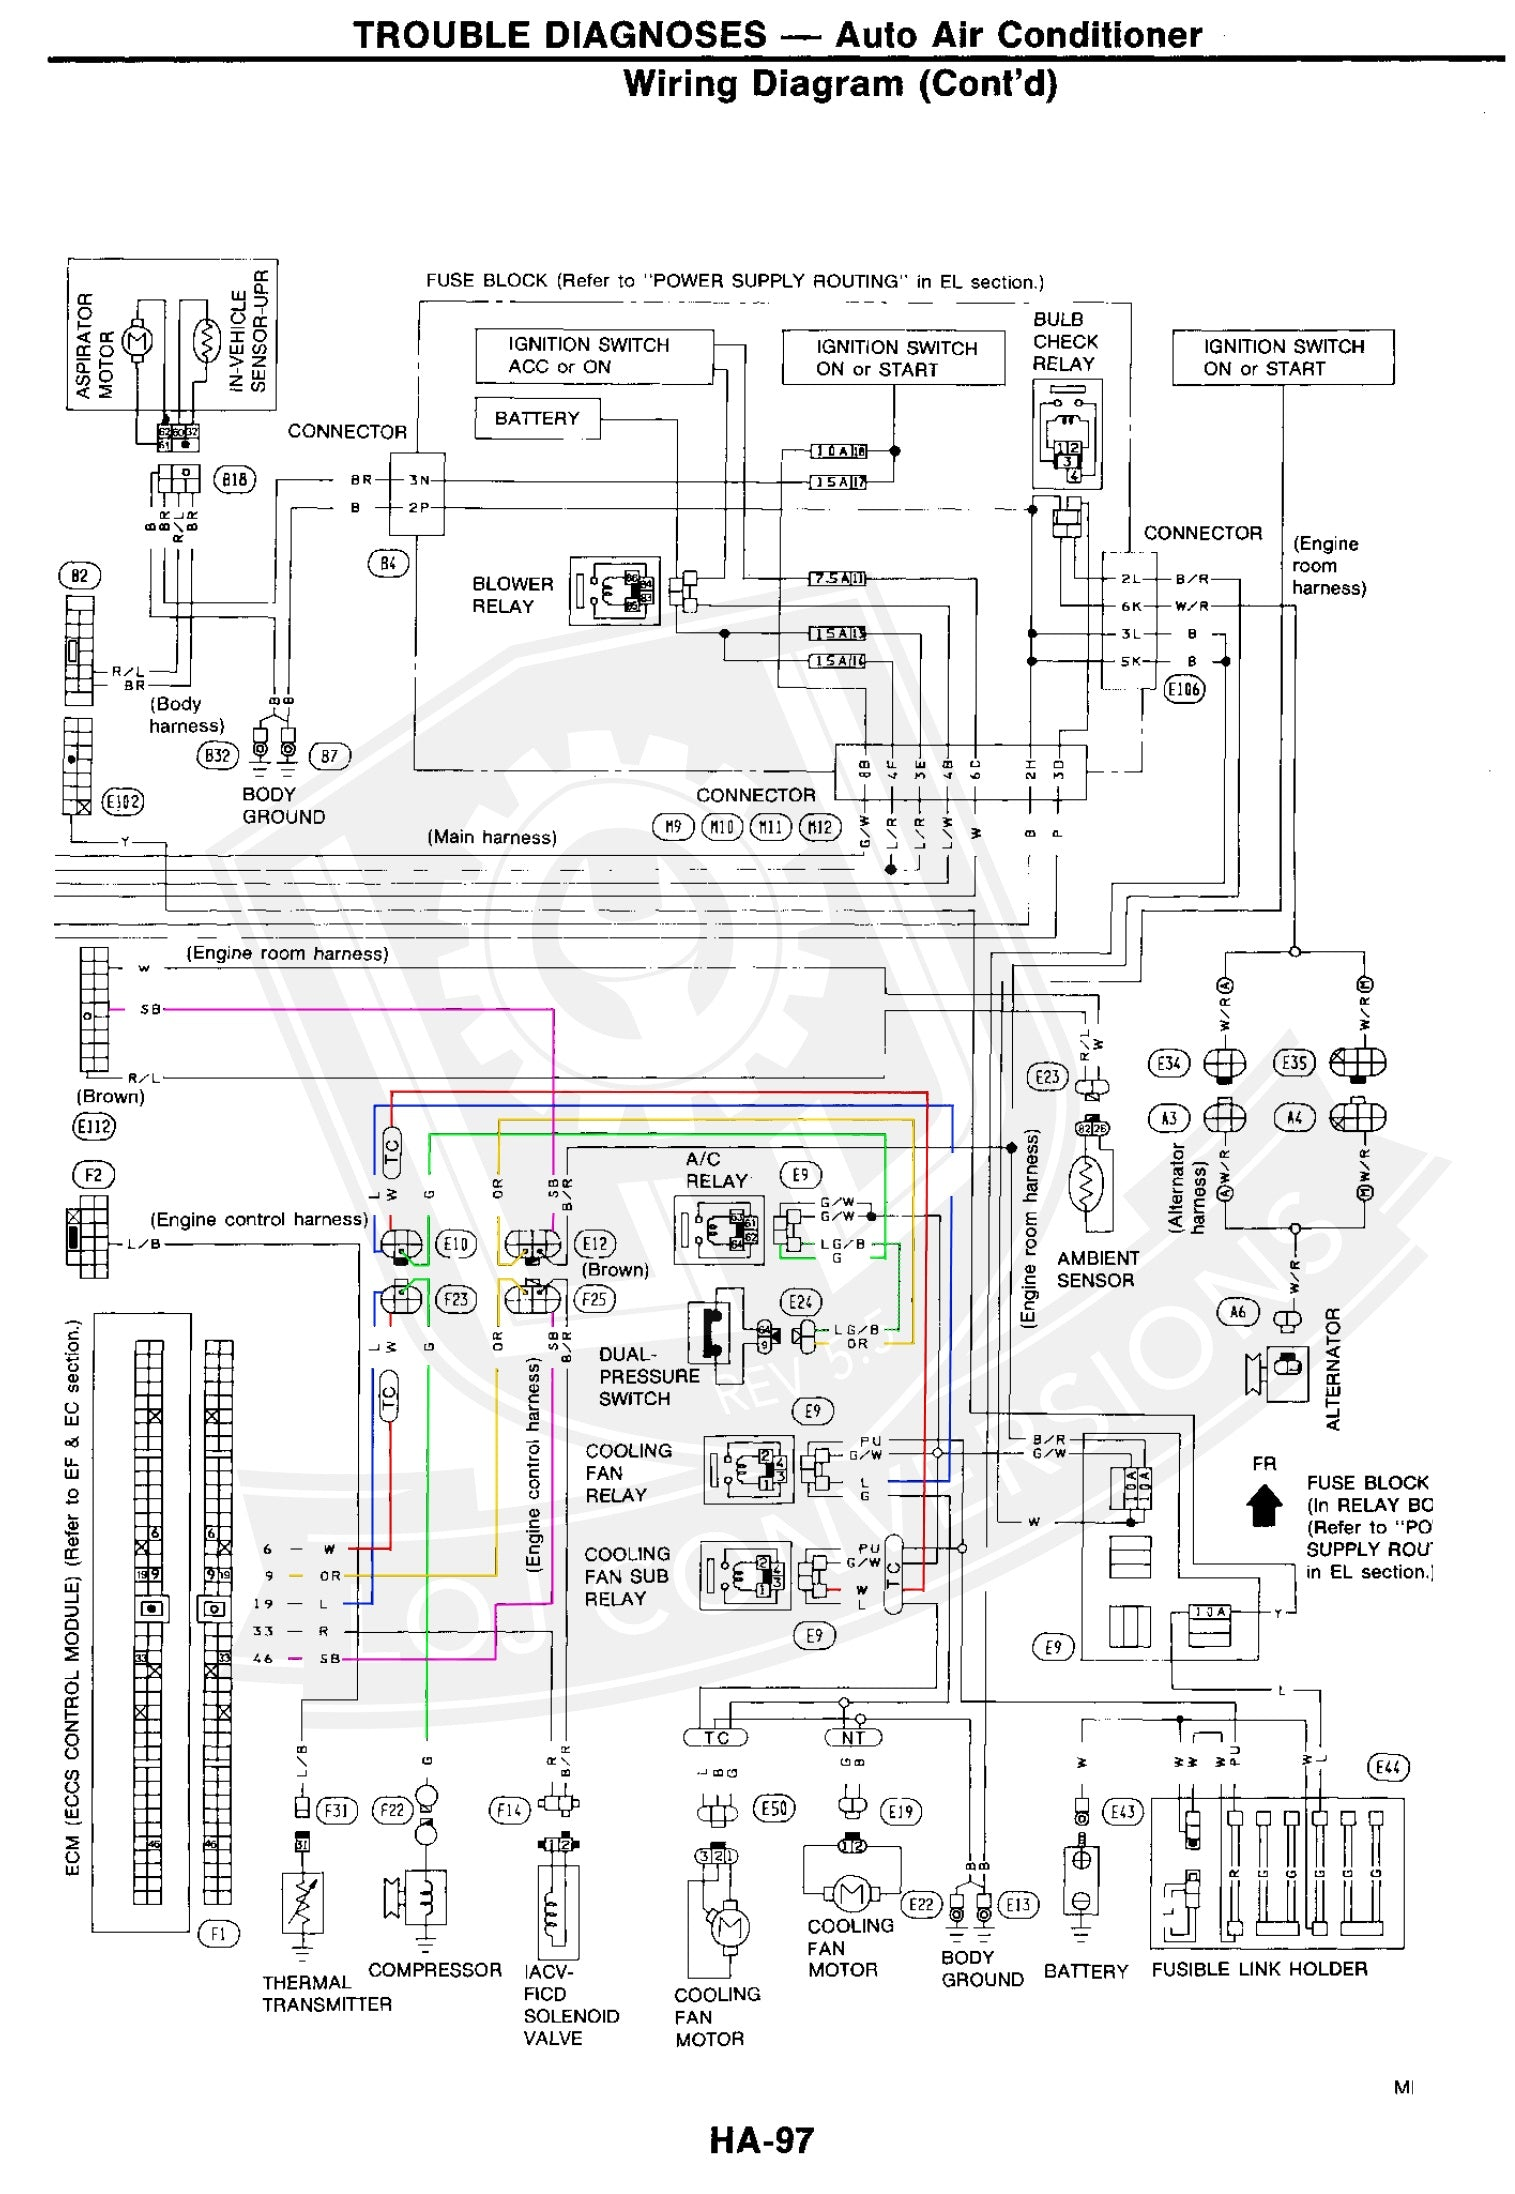 280z Throttle Diagram - Owner Manual & Wiring Diagram on